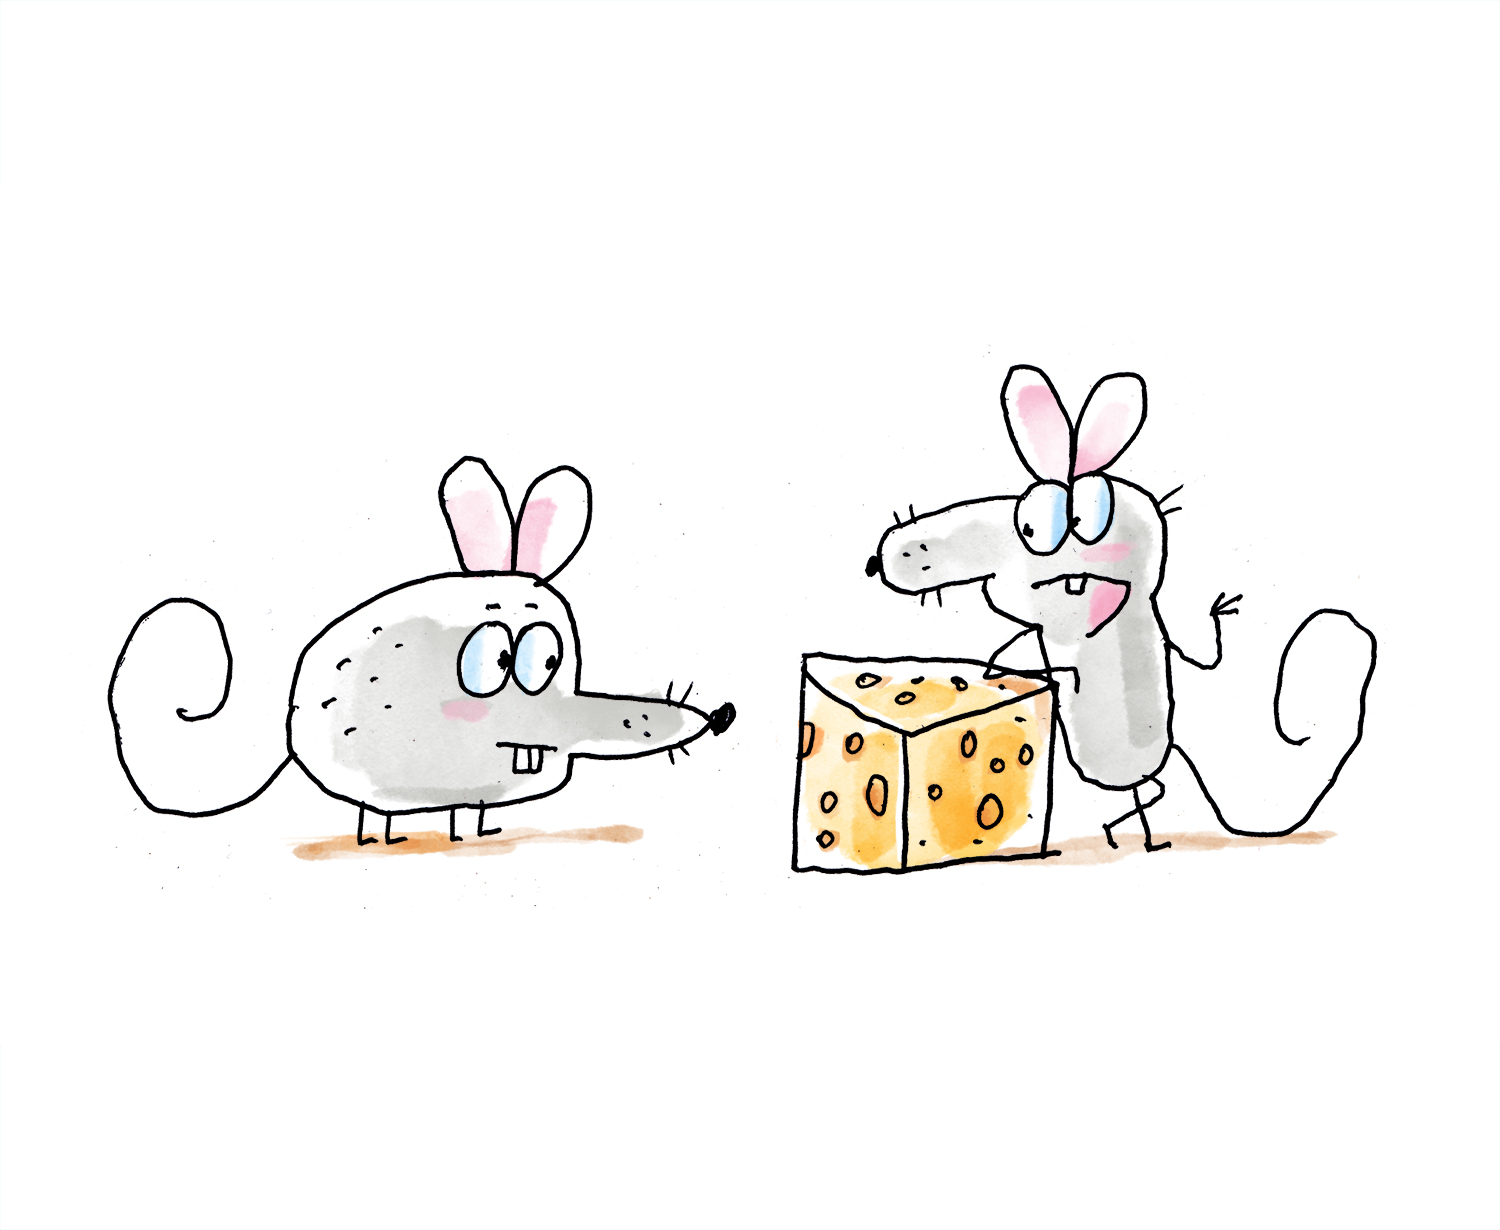 mouse_and_mouse_1500 copy.jpg